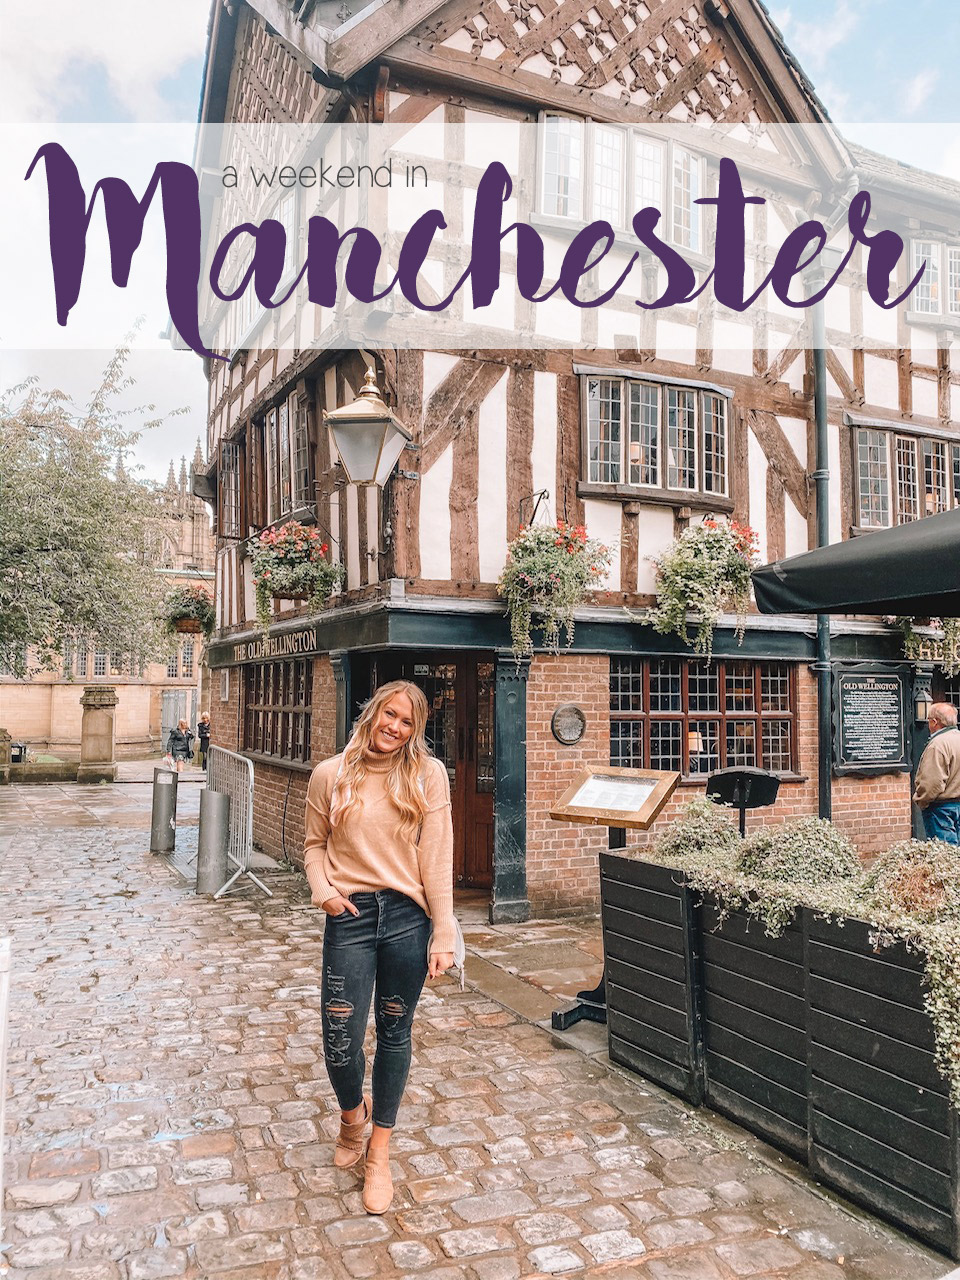 Travel blogger Amanda Martin's guide to Manchester, UK